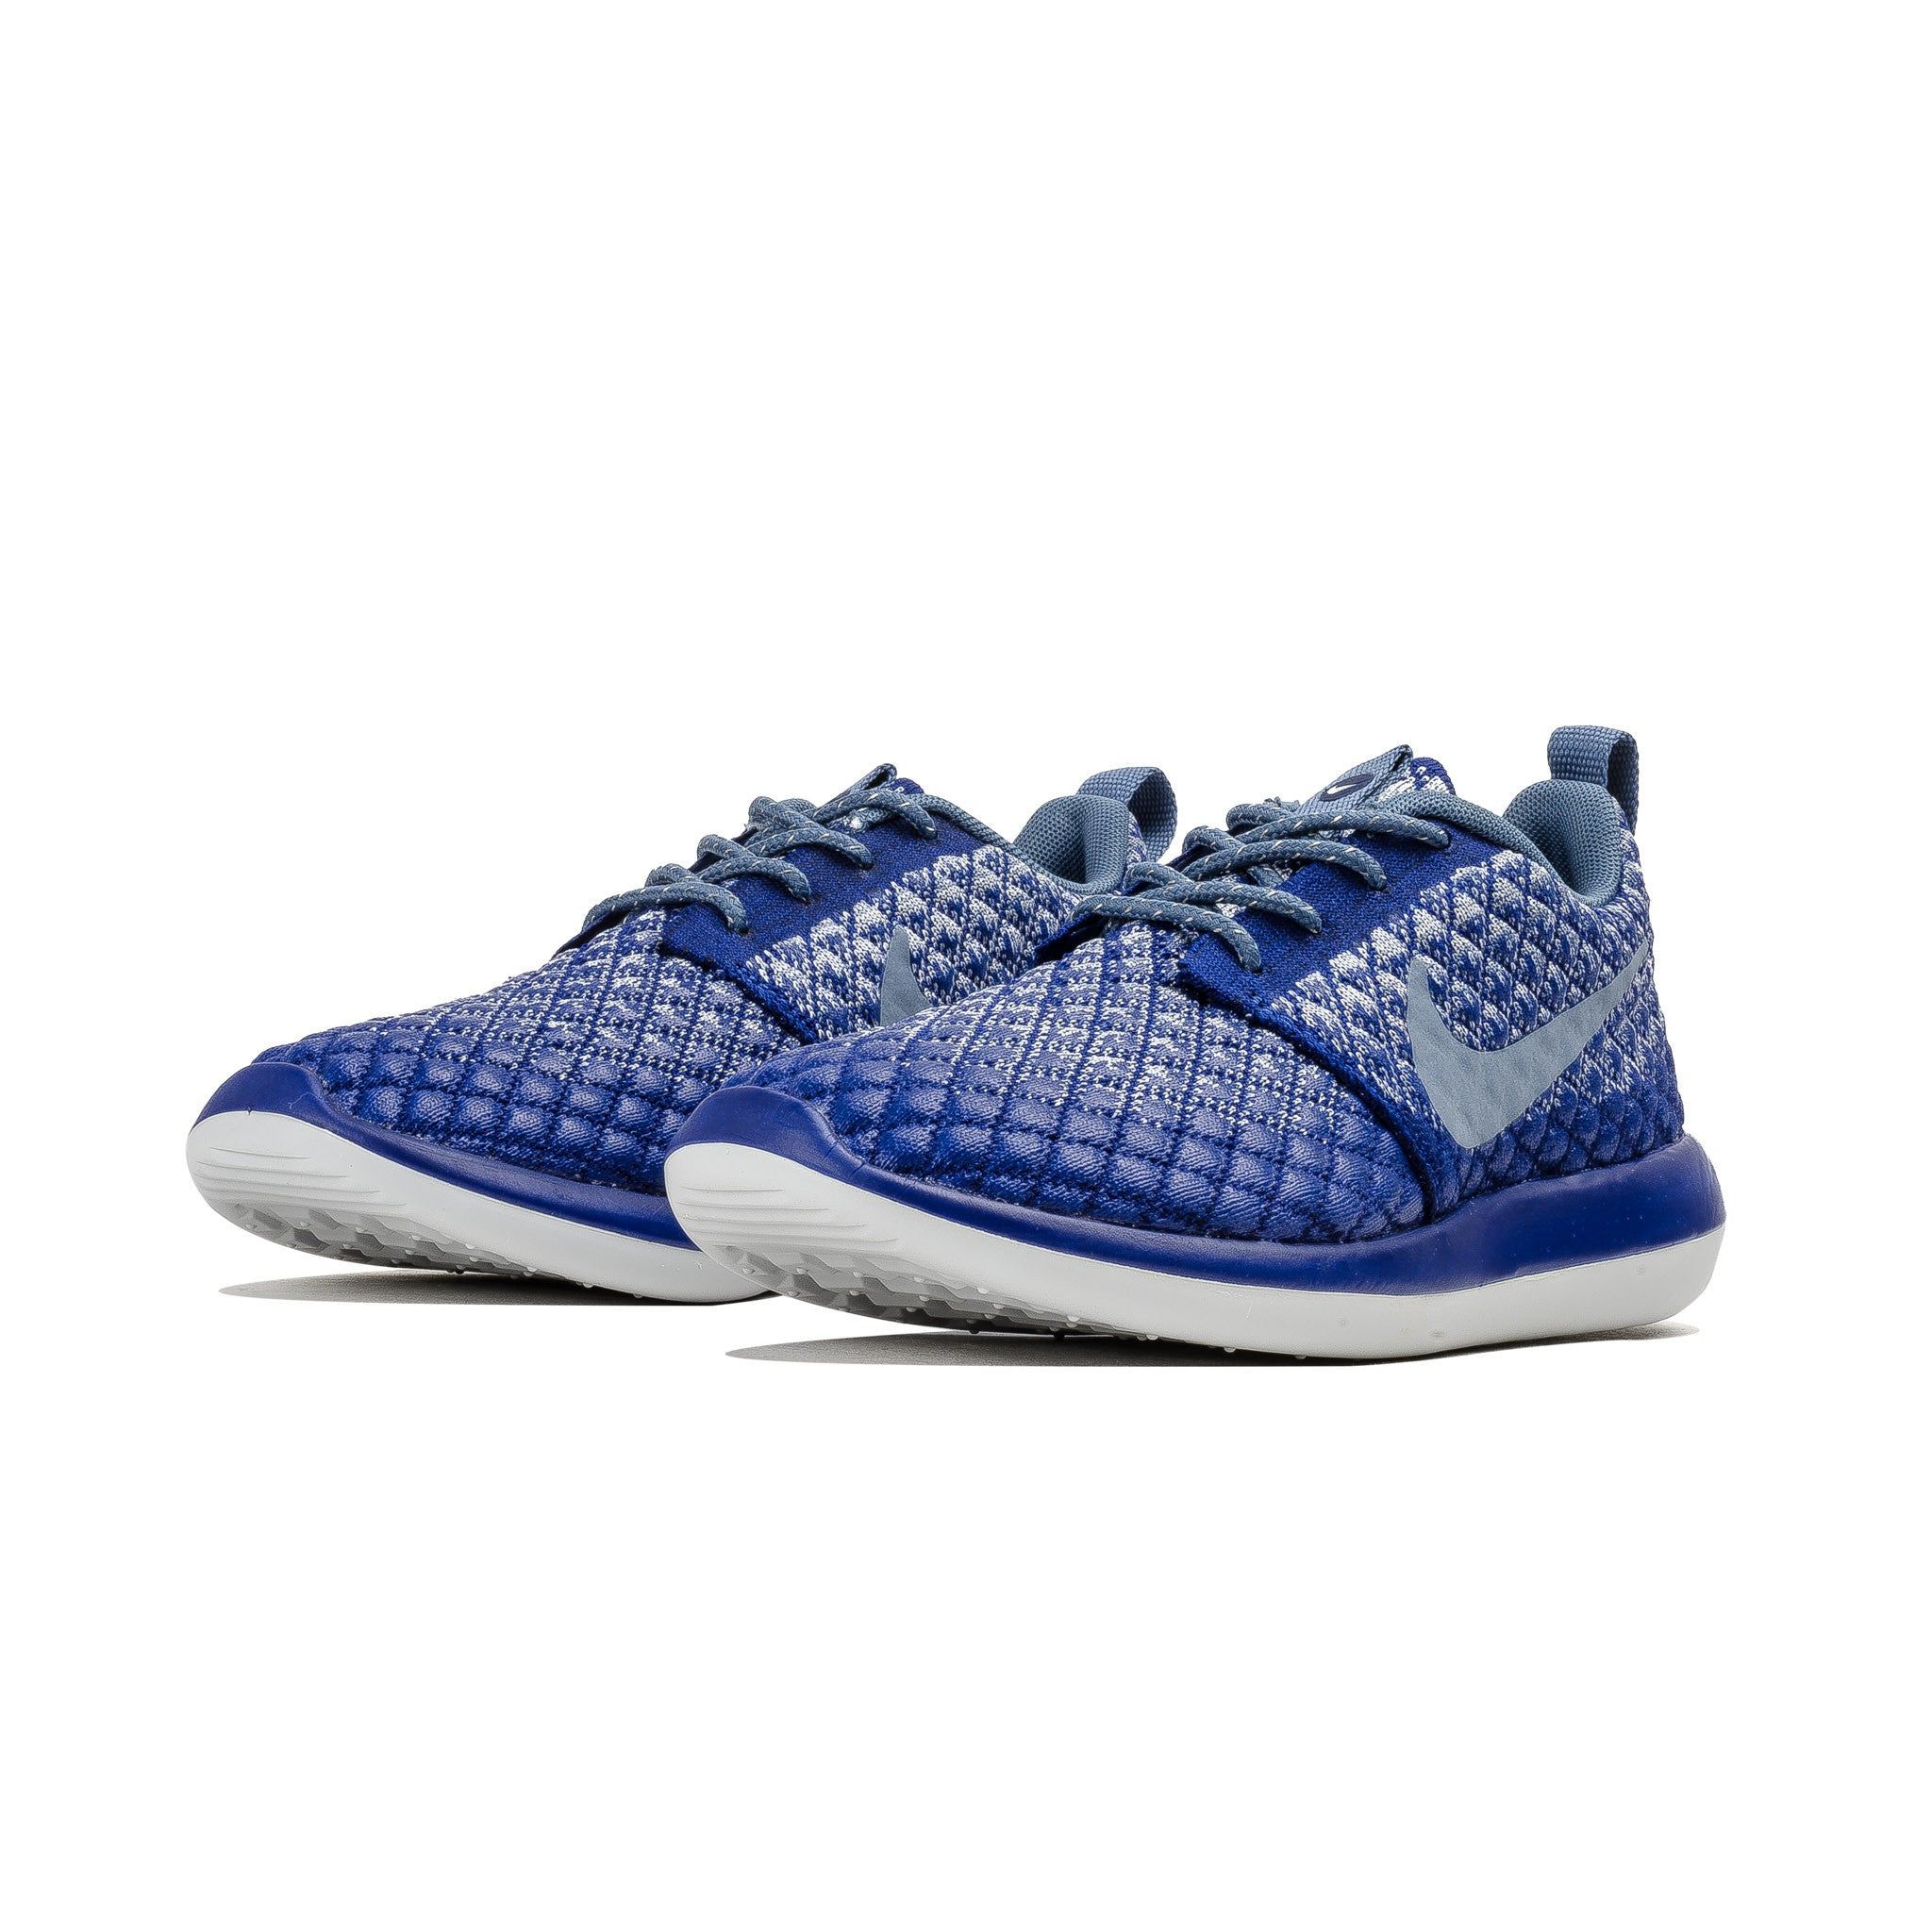 W Roshe Two Flyknit 365 861706-400 Deep Royal